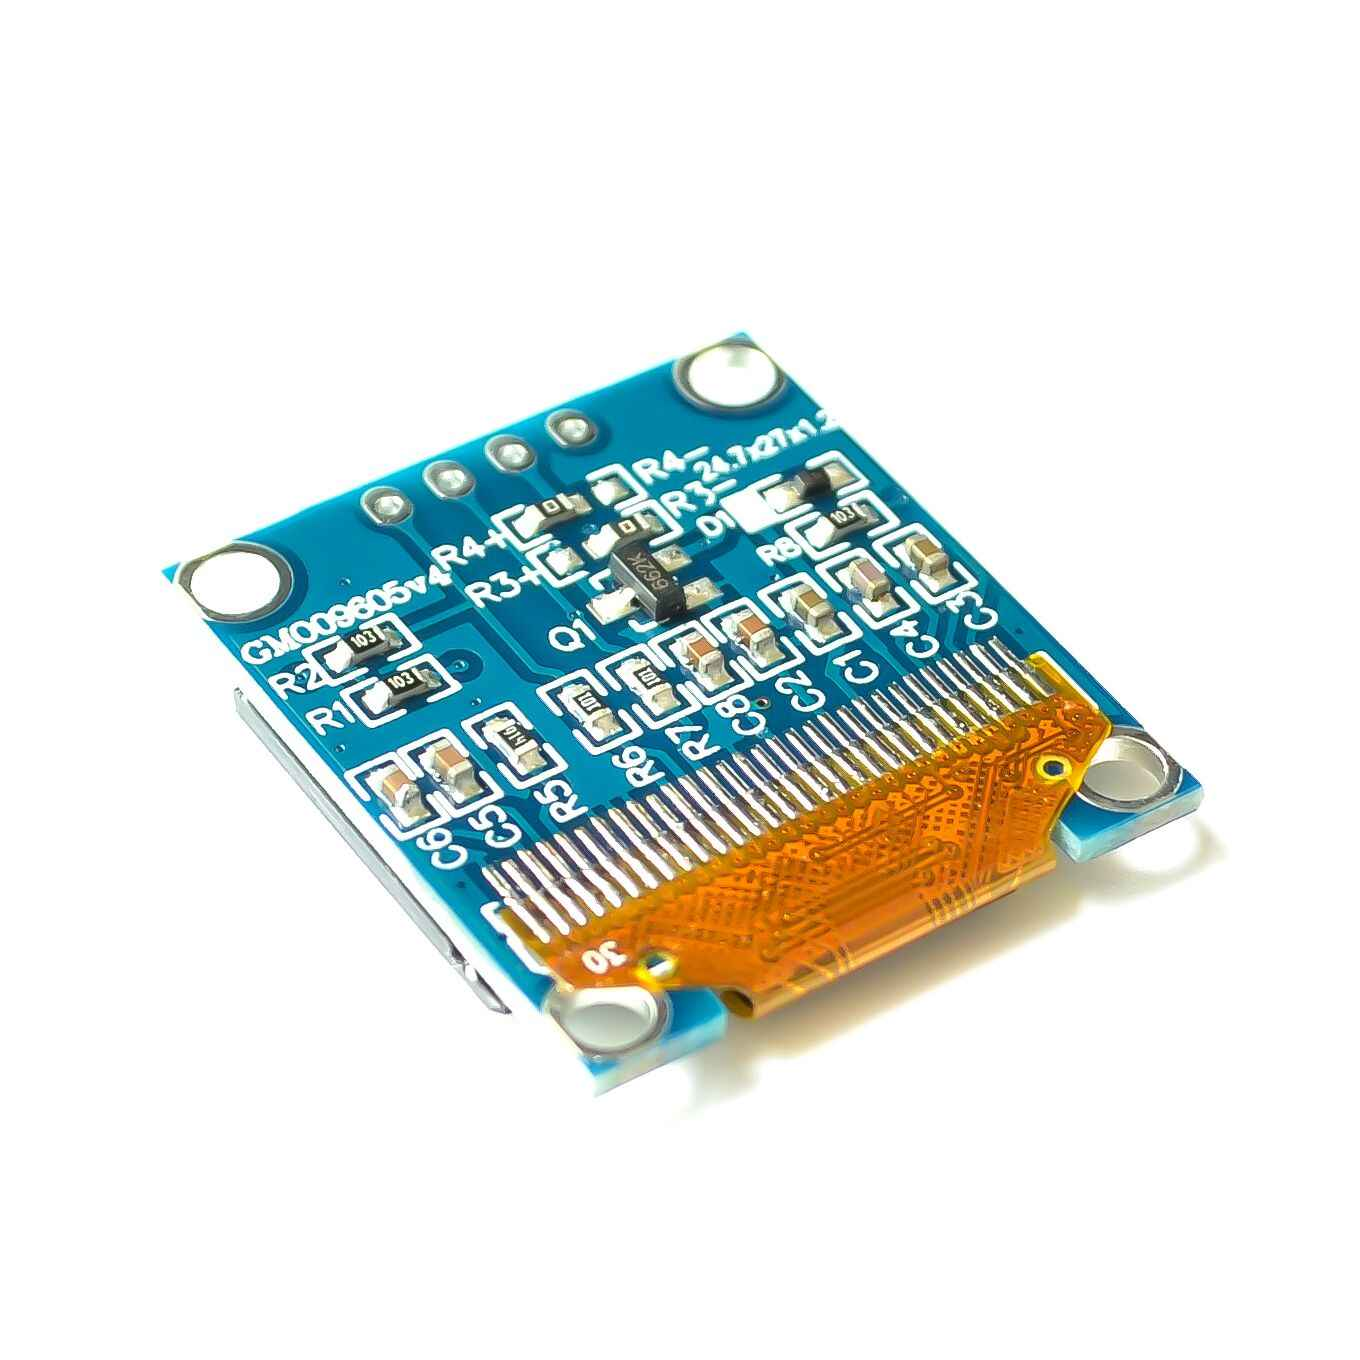 White Blue color 128X64 OLED LCD LED Display Module For Arduino 0.91 0.96 1.3 I2C IIC Serial new original with Case